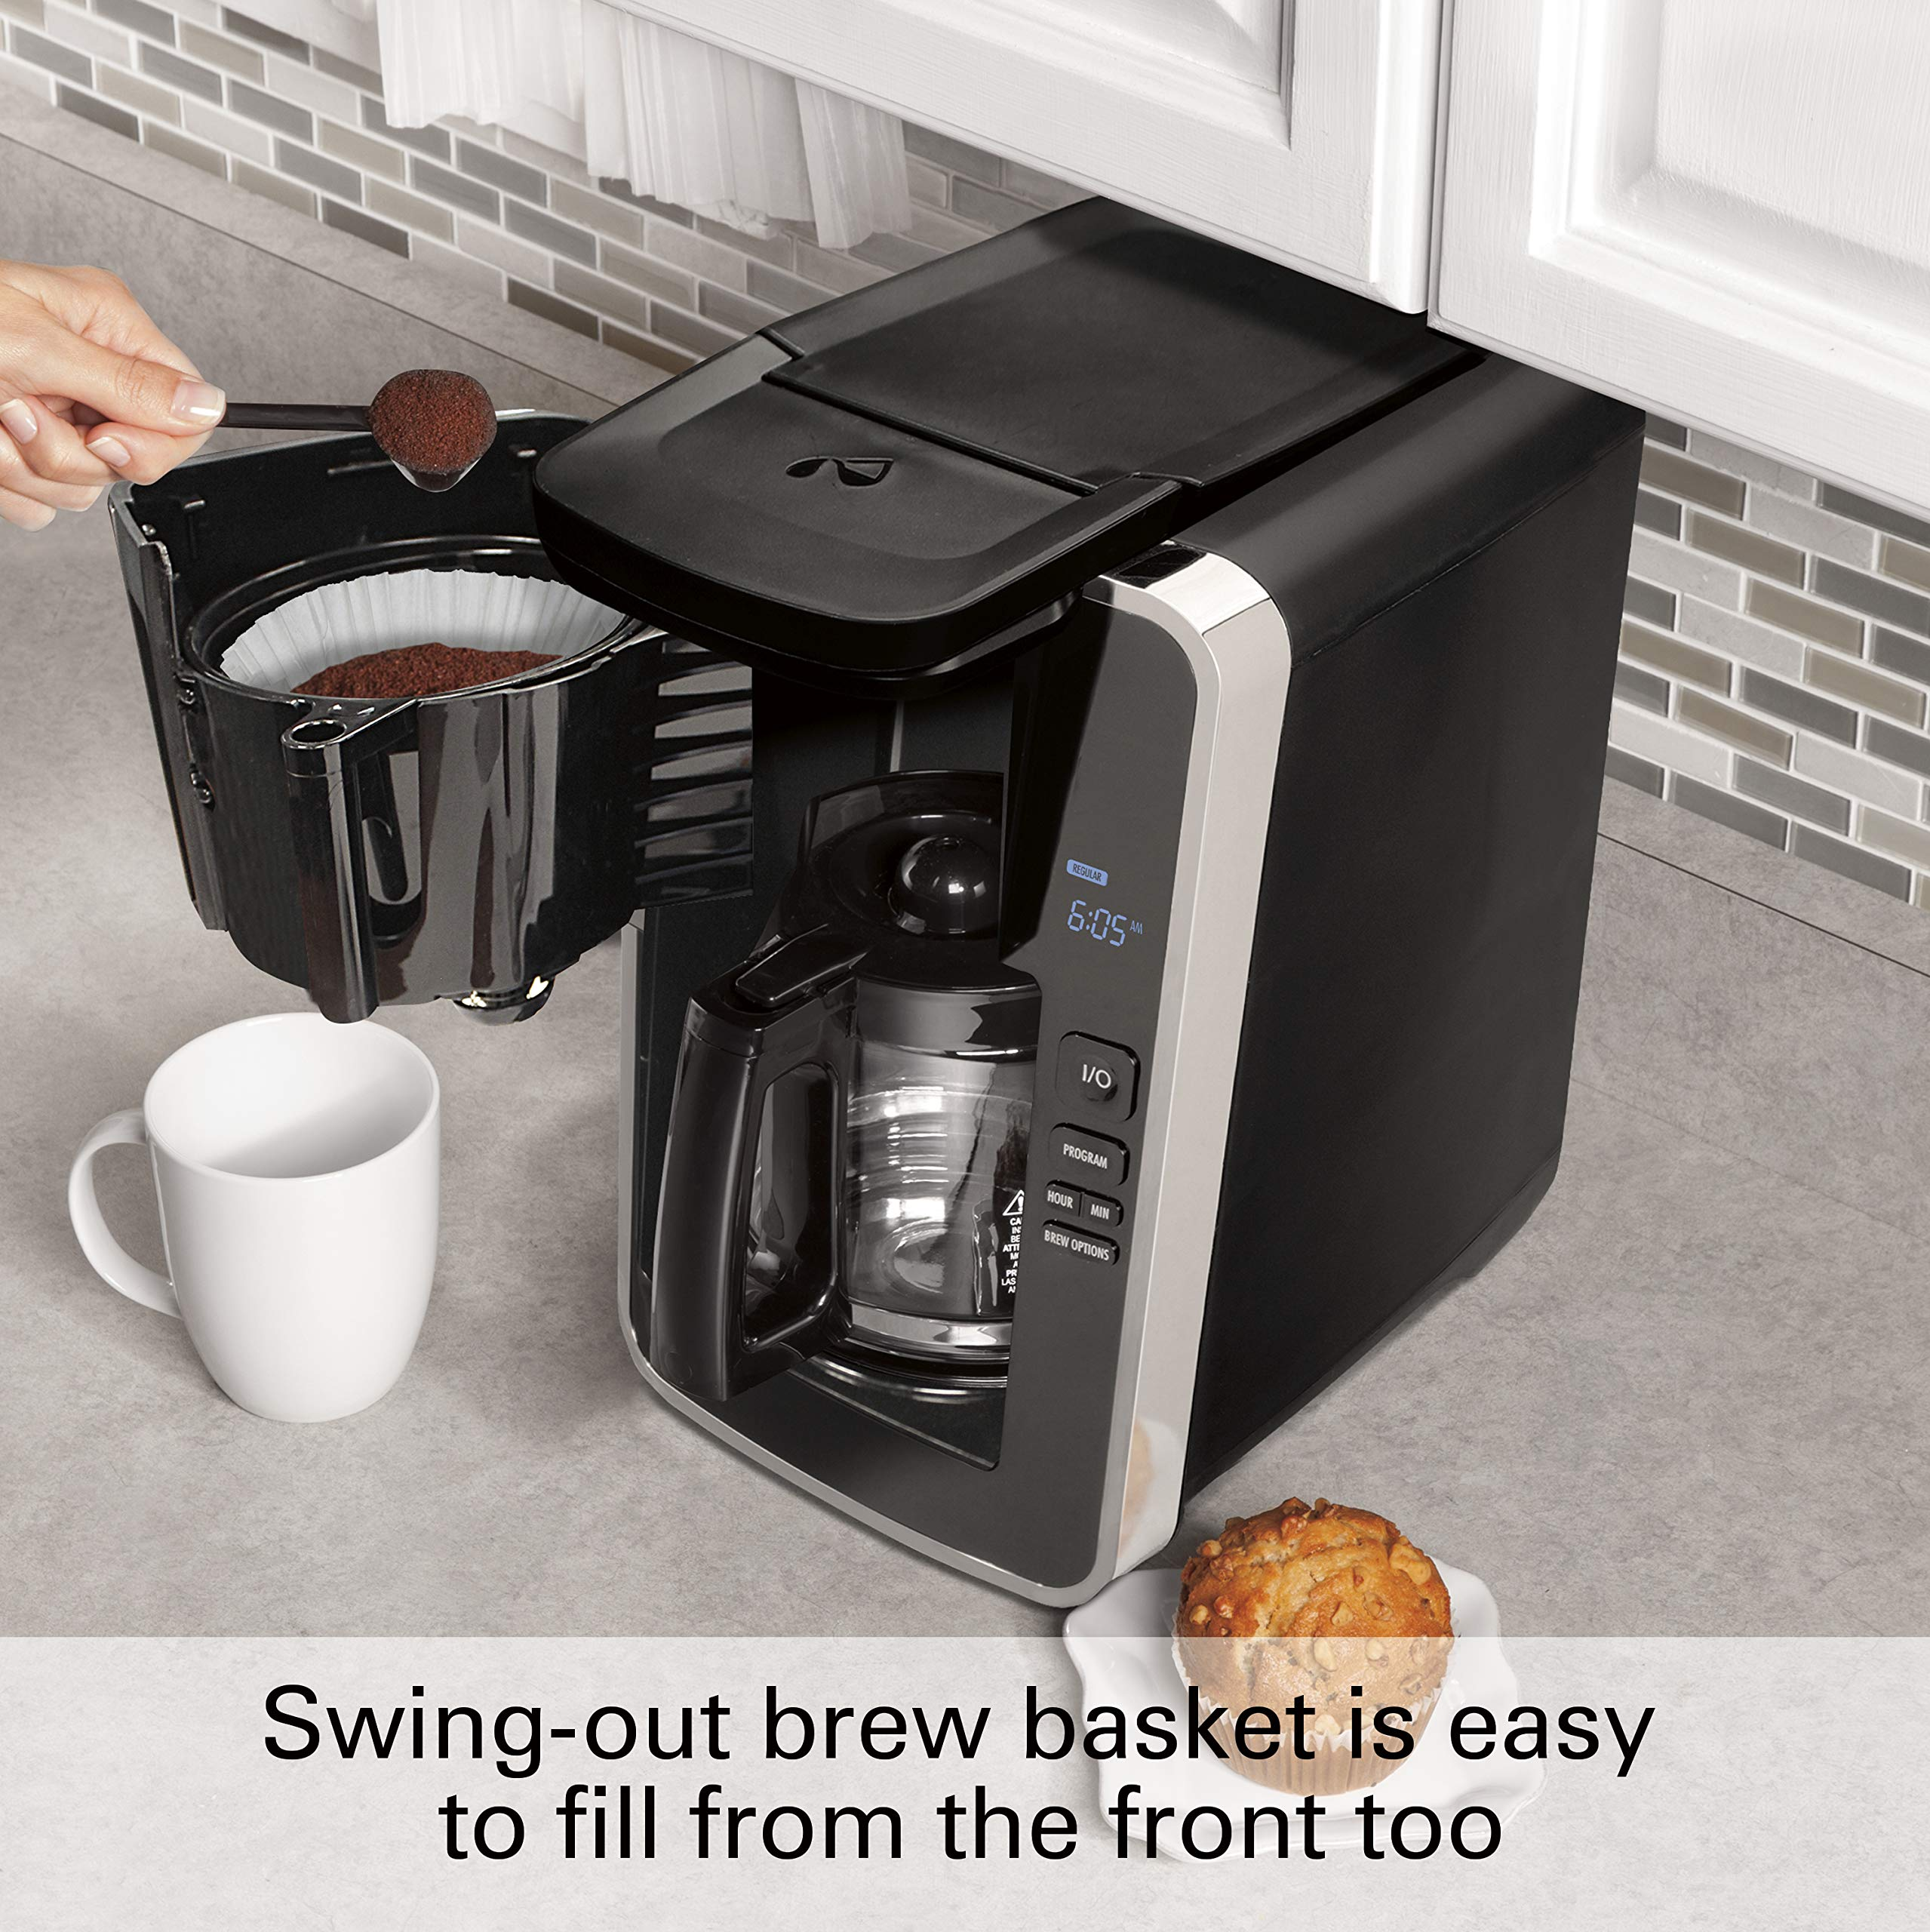 Hamilton Beach Programmable 12 Cup Coffee Maker, Easy Front Access Deluxe, Brew Options, Black and Stainless (46320), by Hamilton Beach (Image #4)